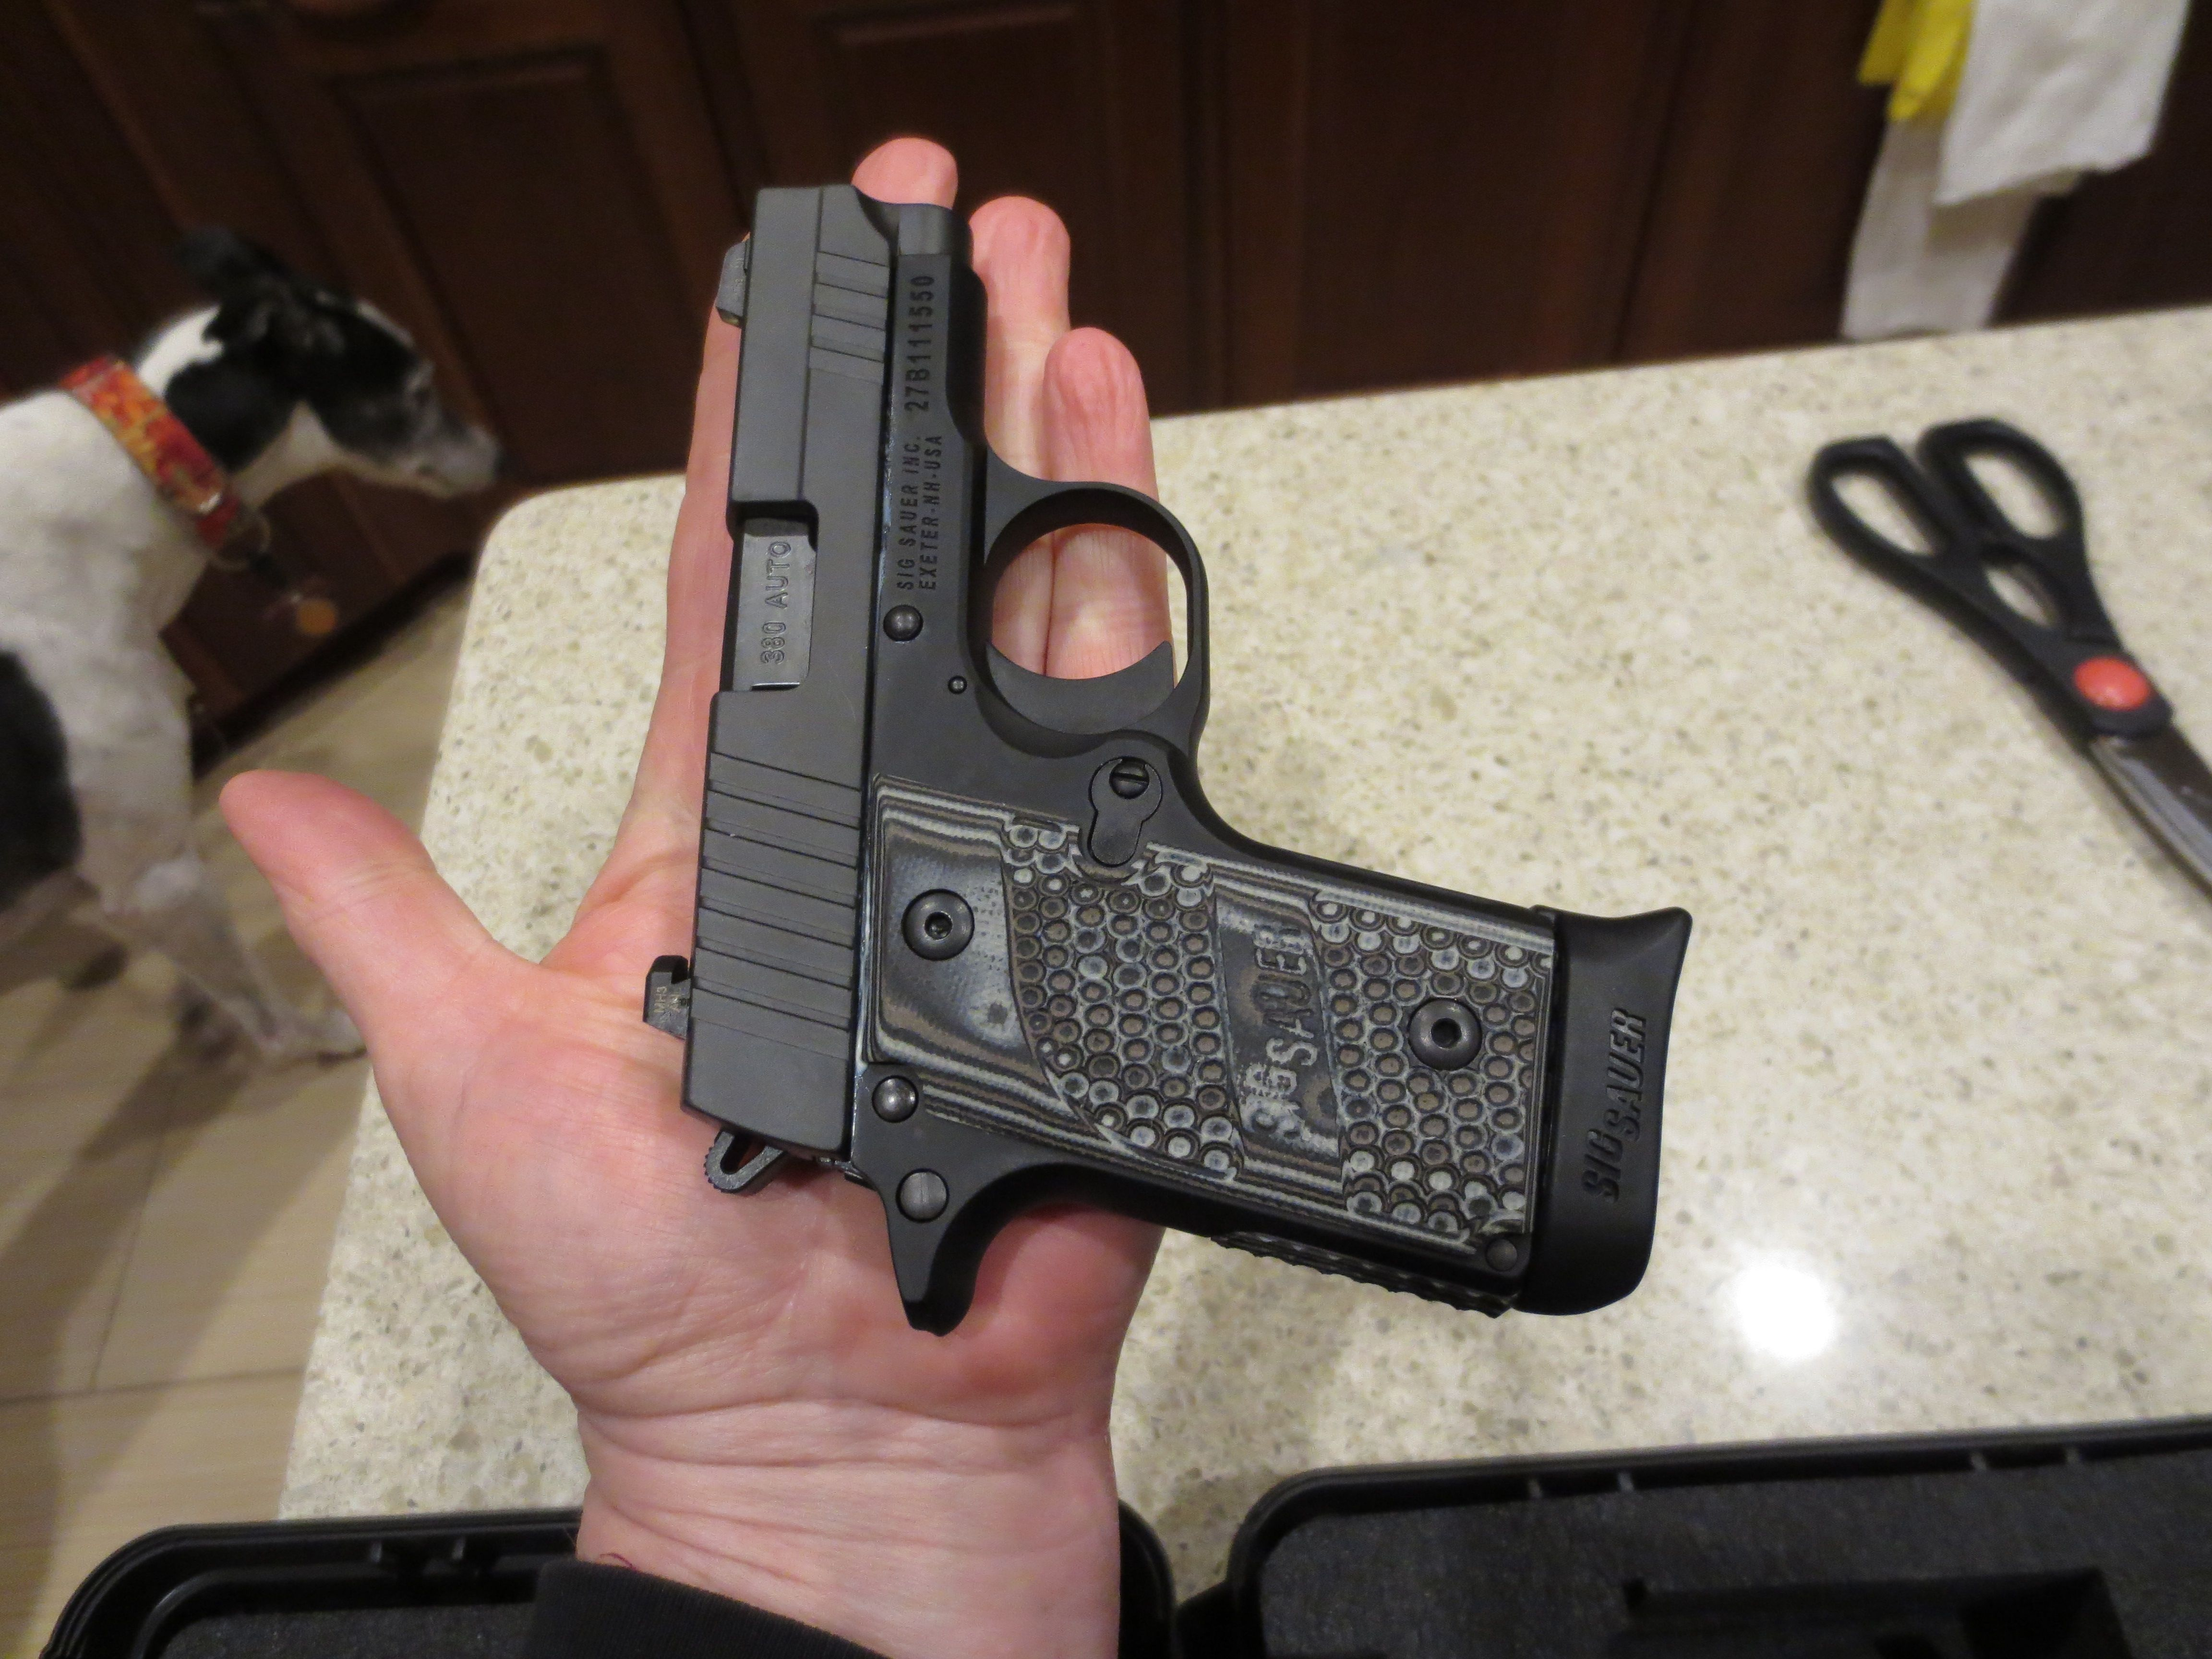 sig sauer p238 380 pistol with an extended magazine so tiny my hand almost hides it i love this little gun oh and those grips  [ 4608 x 3456 Pixel ]